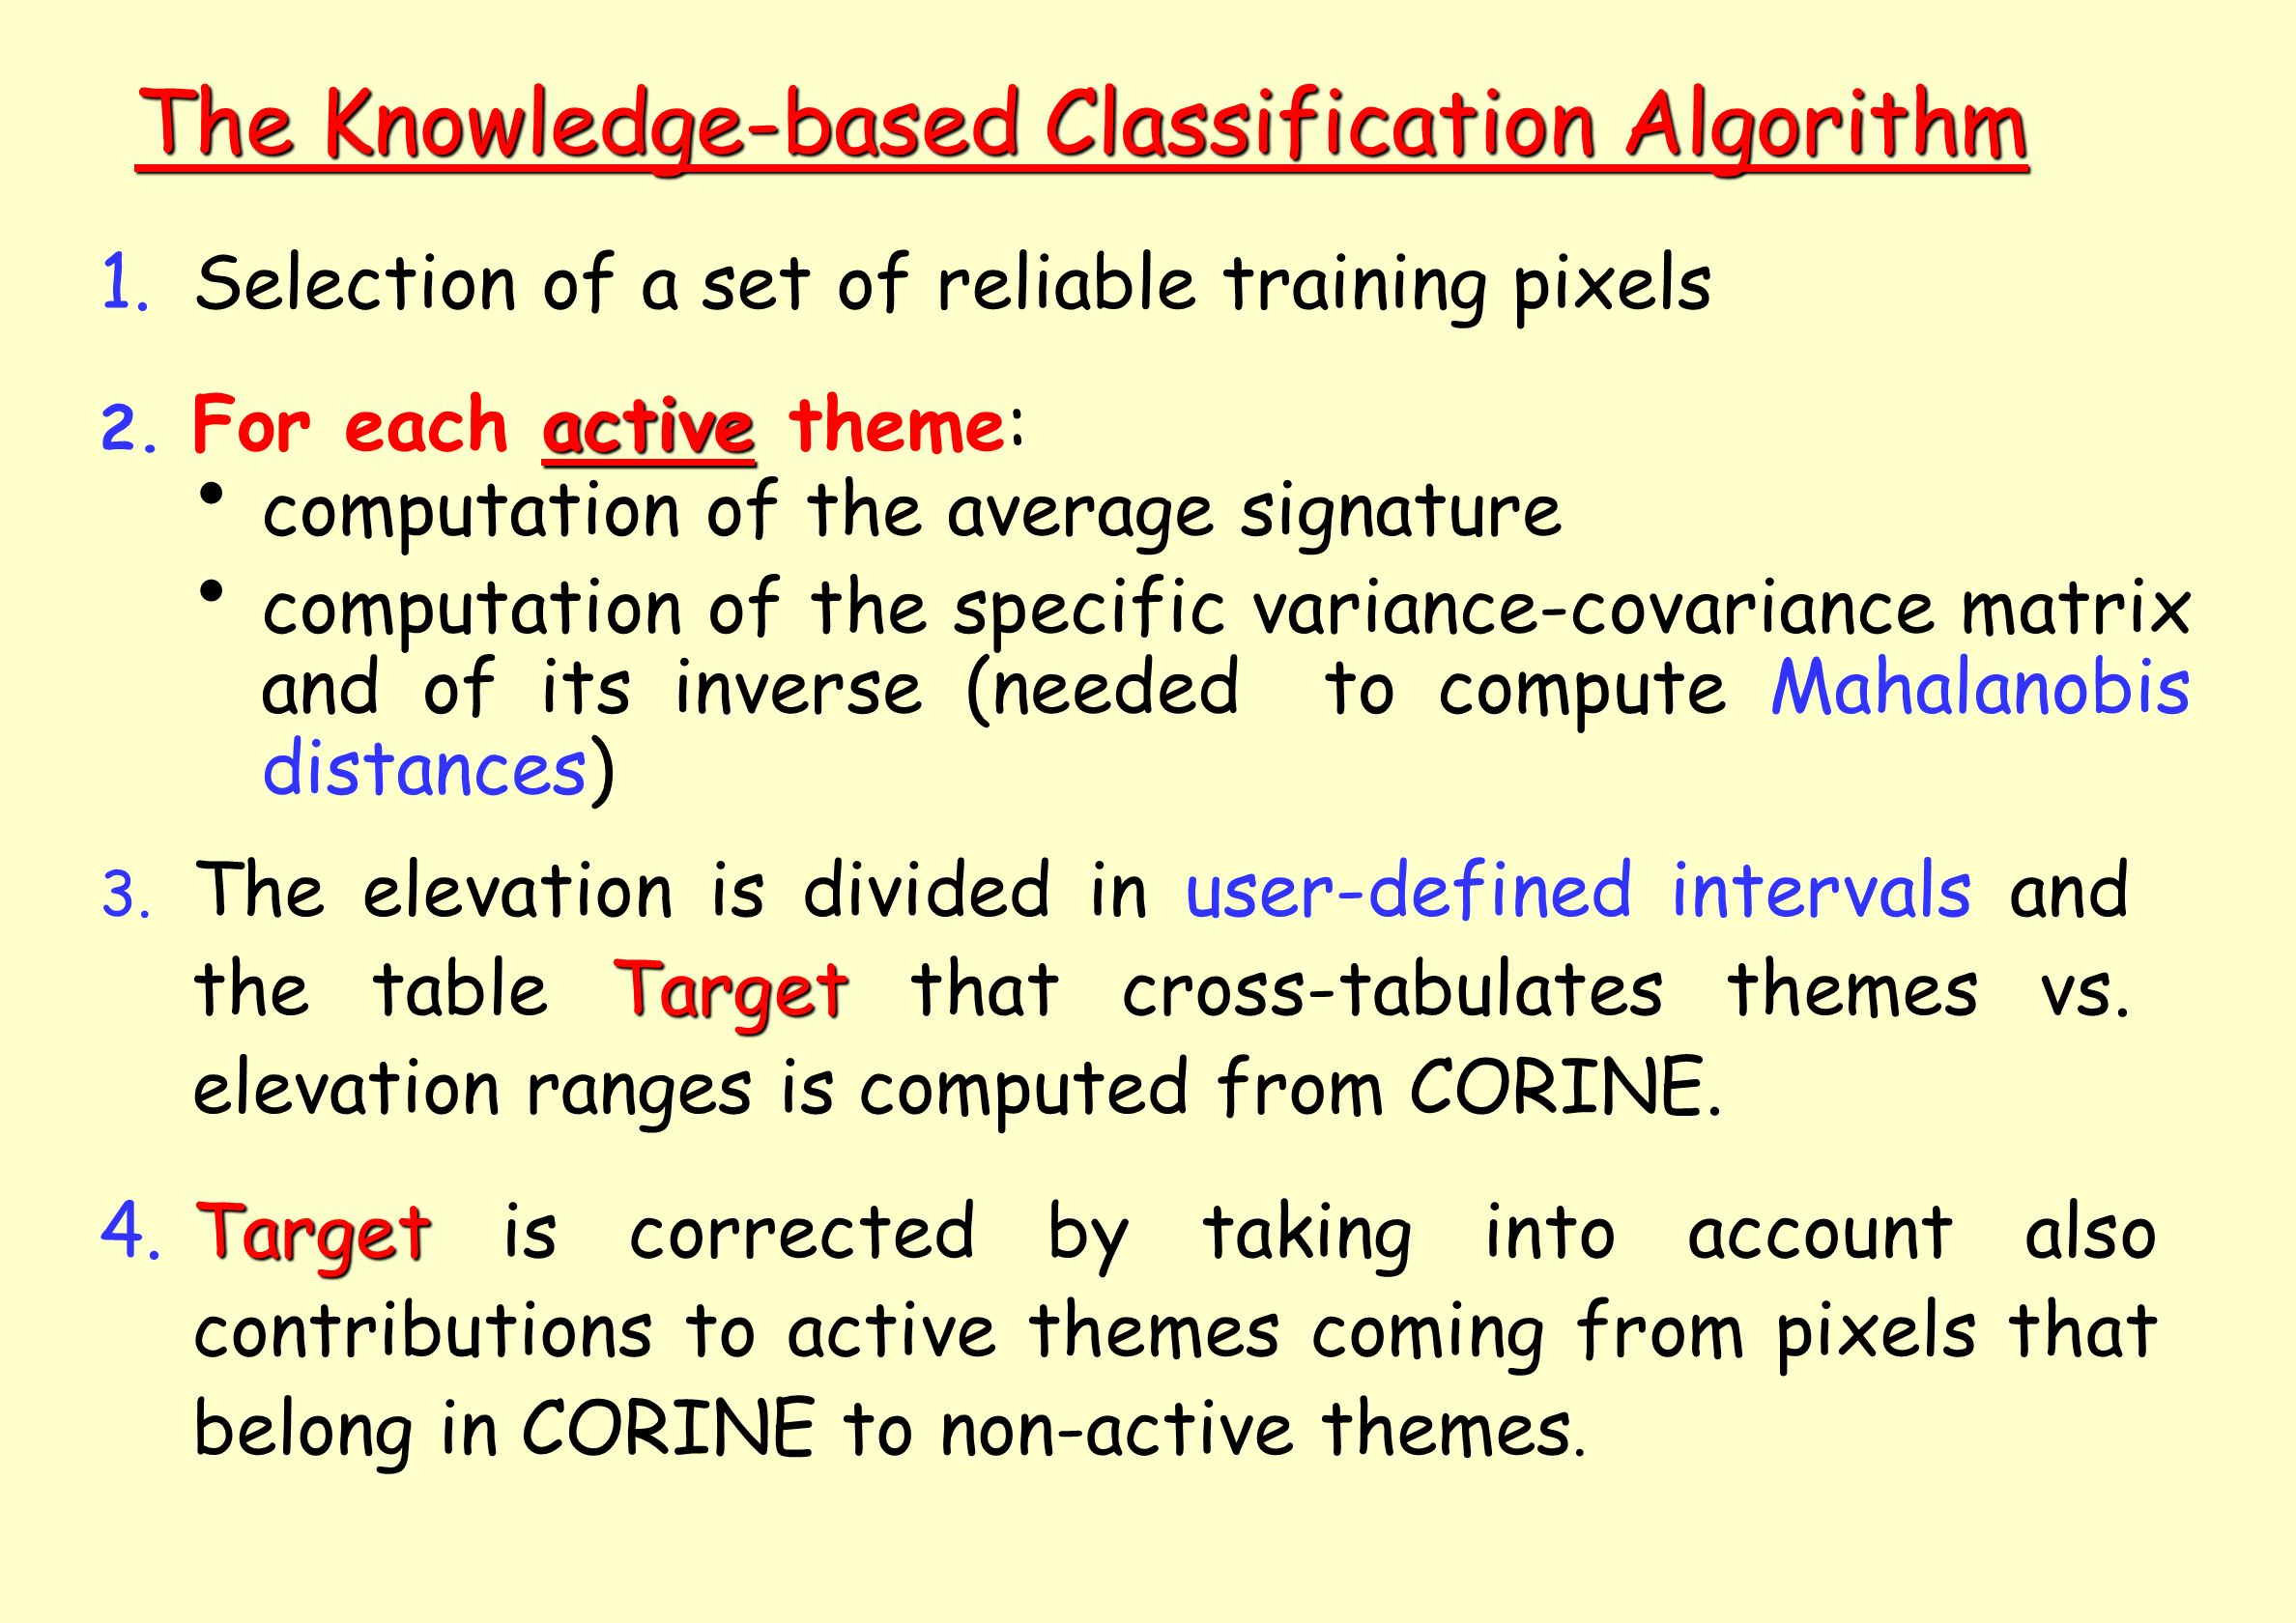 The Knowledge-based Classification Algorithm